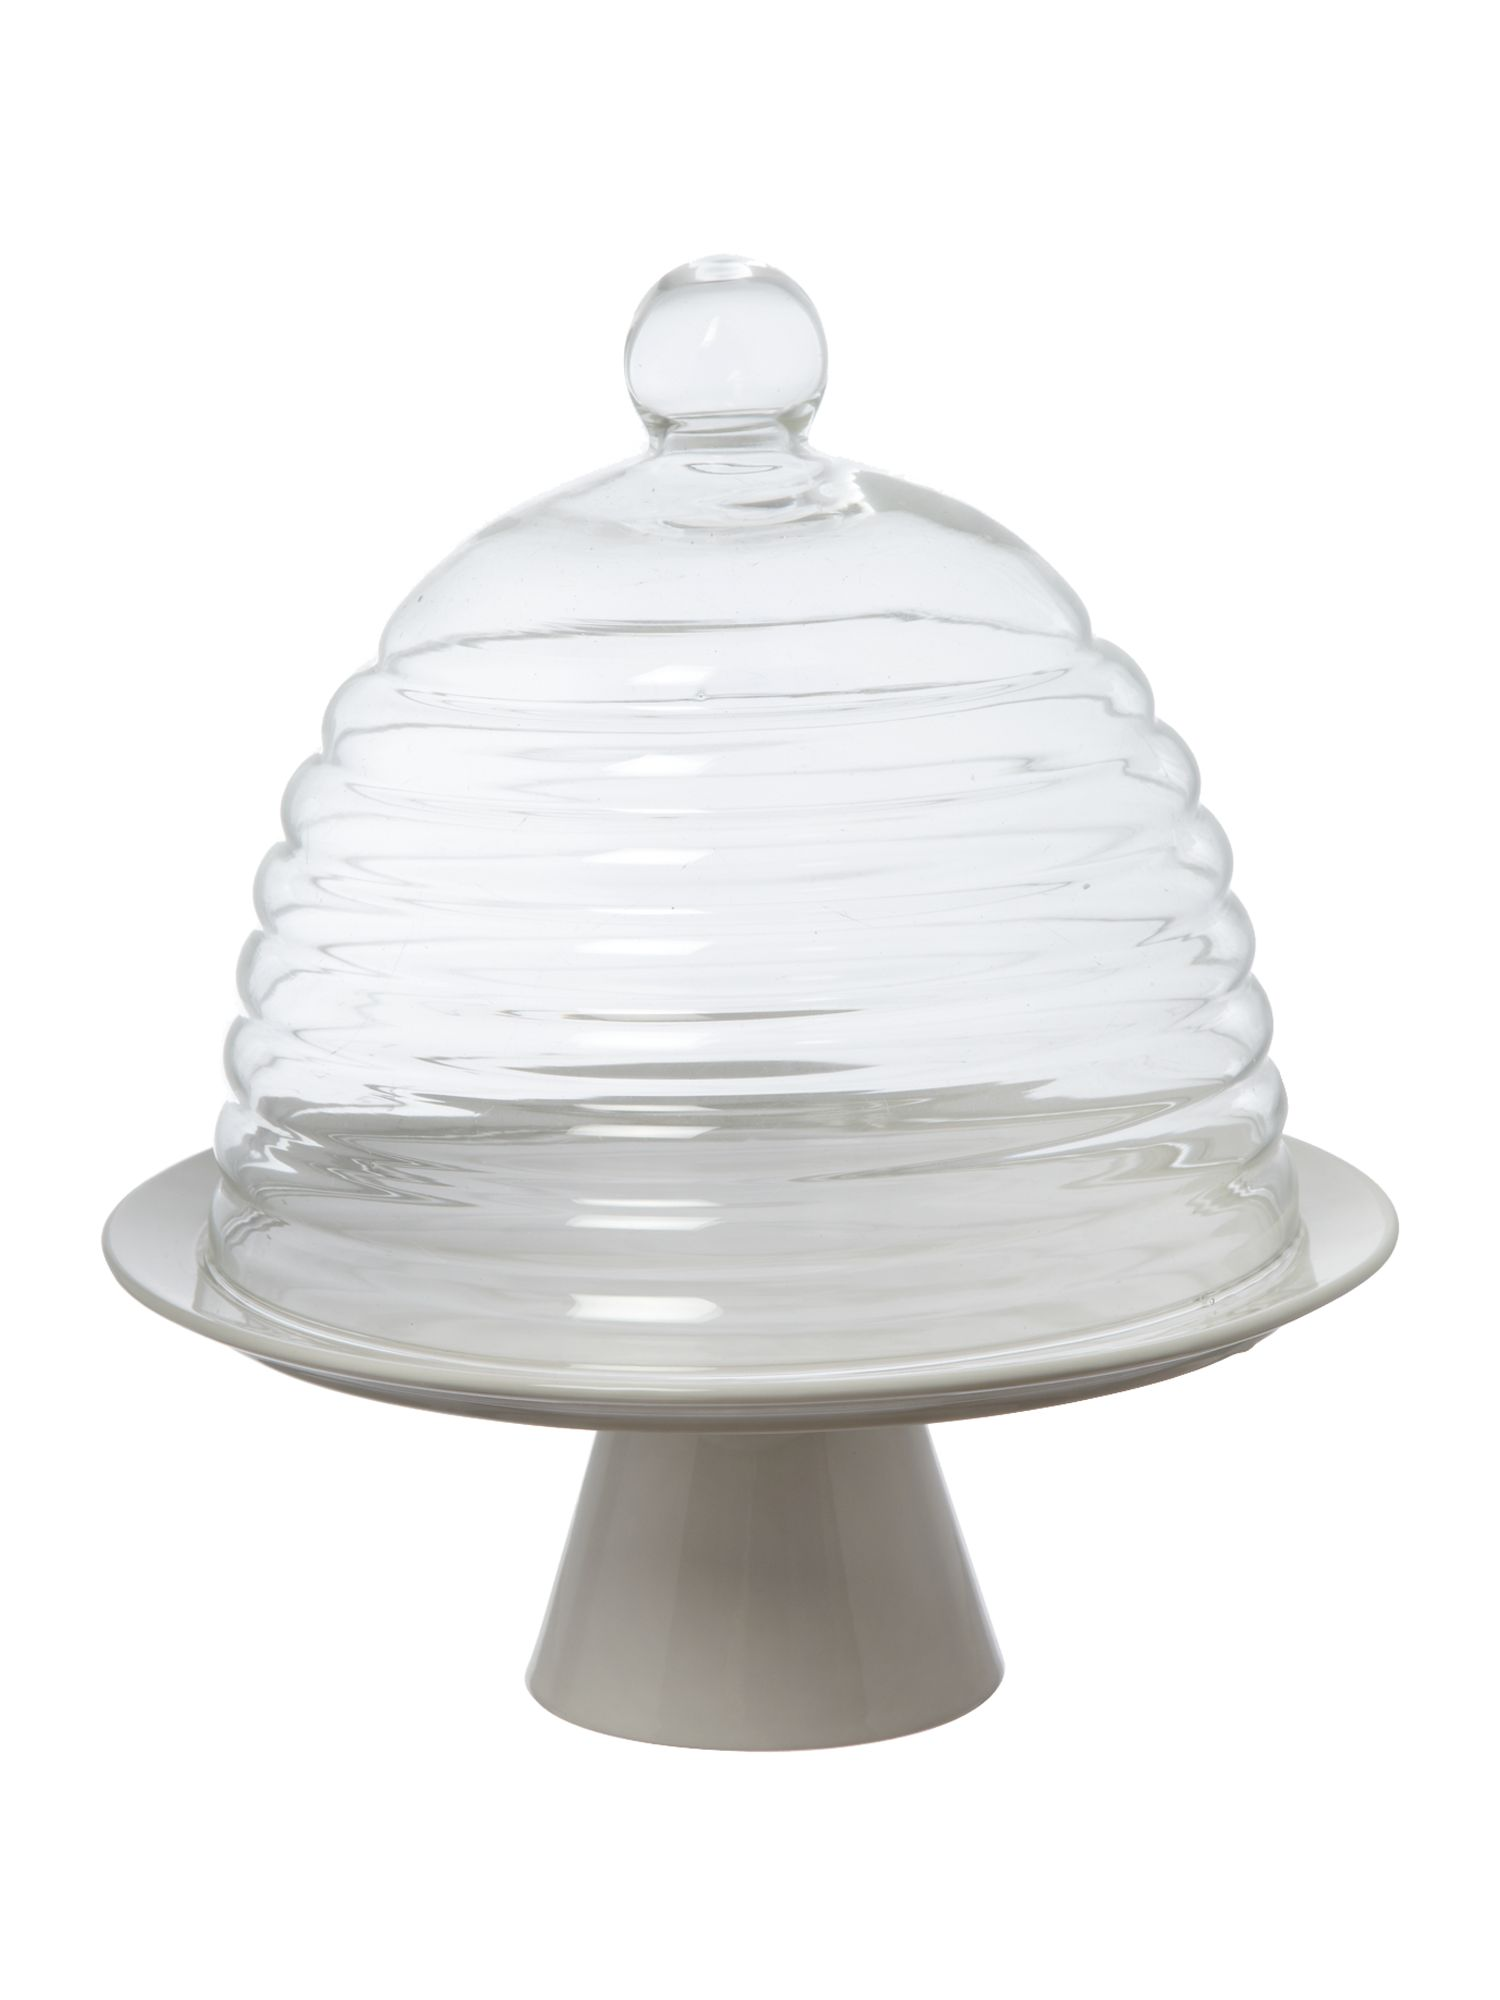 Kitchen Craft Traditional 25cm glass dome cake stand